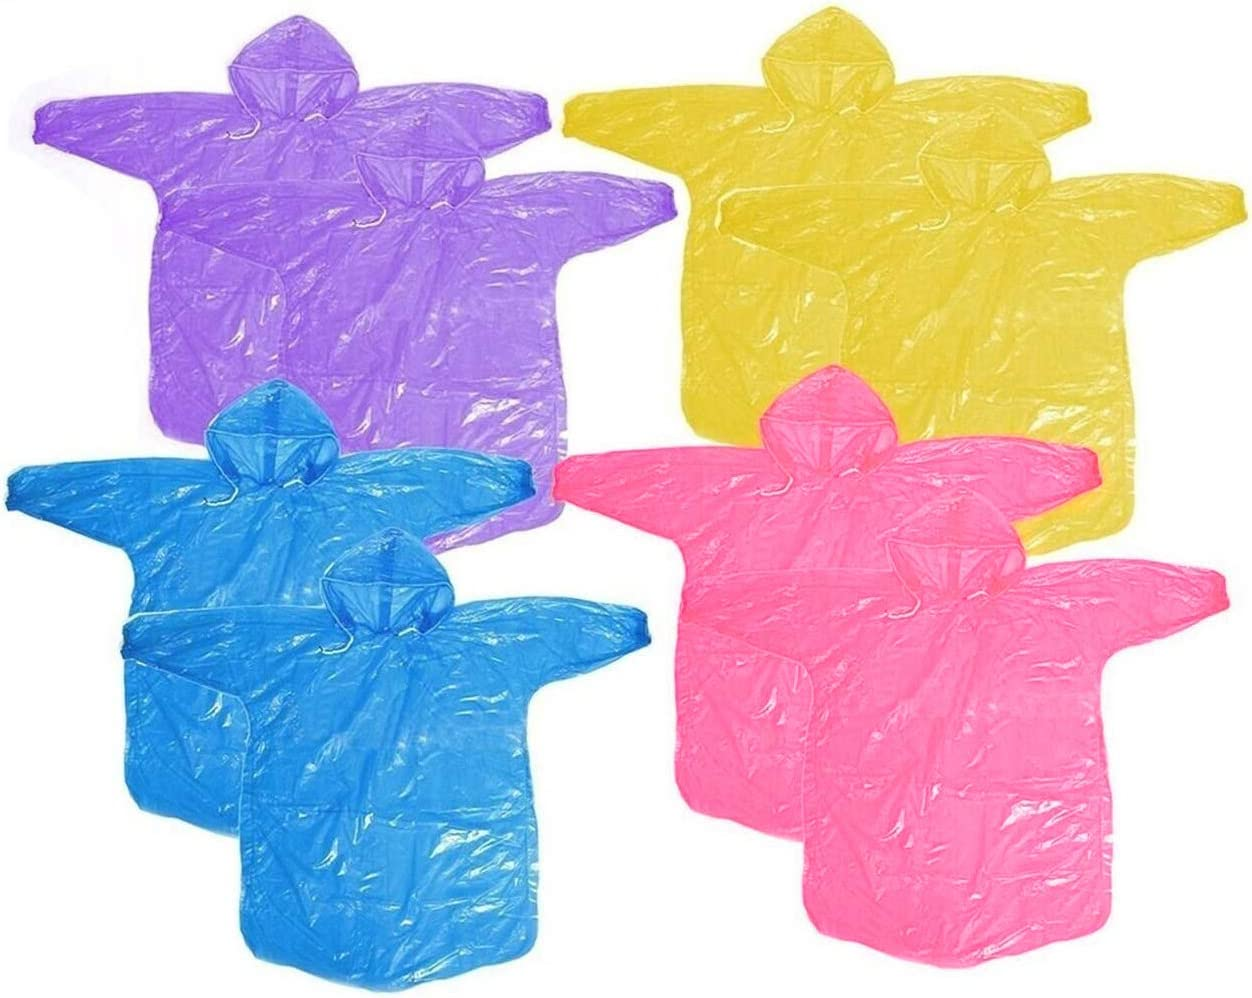 HUABEI 8 Pack Disposable Kids Rain Poncho,Packable Rain Coat with Drawstring Hood,Pack for Emergency - Lightweight, Super Waterproof for Camping Hiking Disney Traveling Fishing Outdoor-Assorted Colors